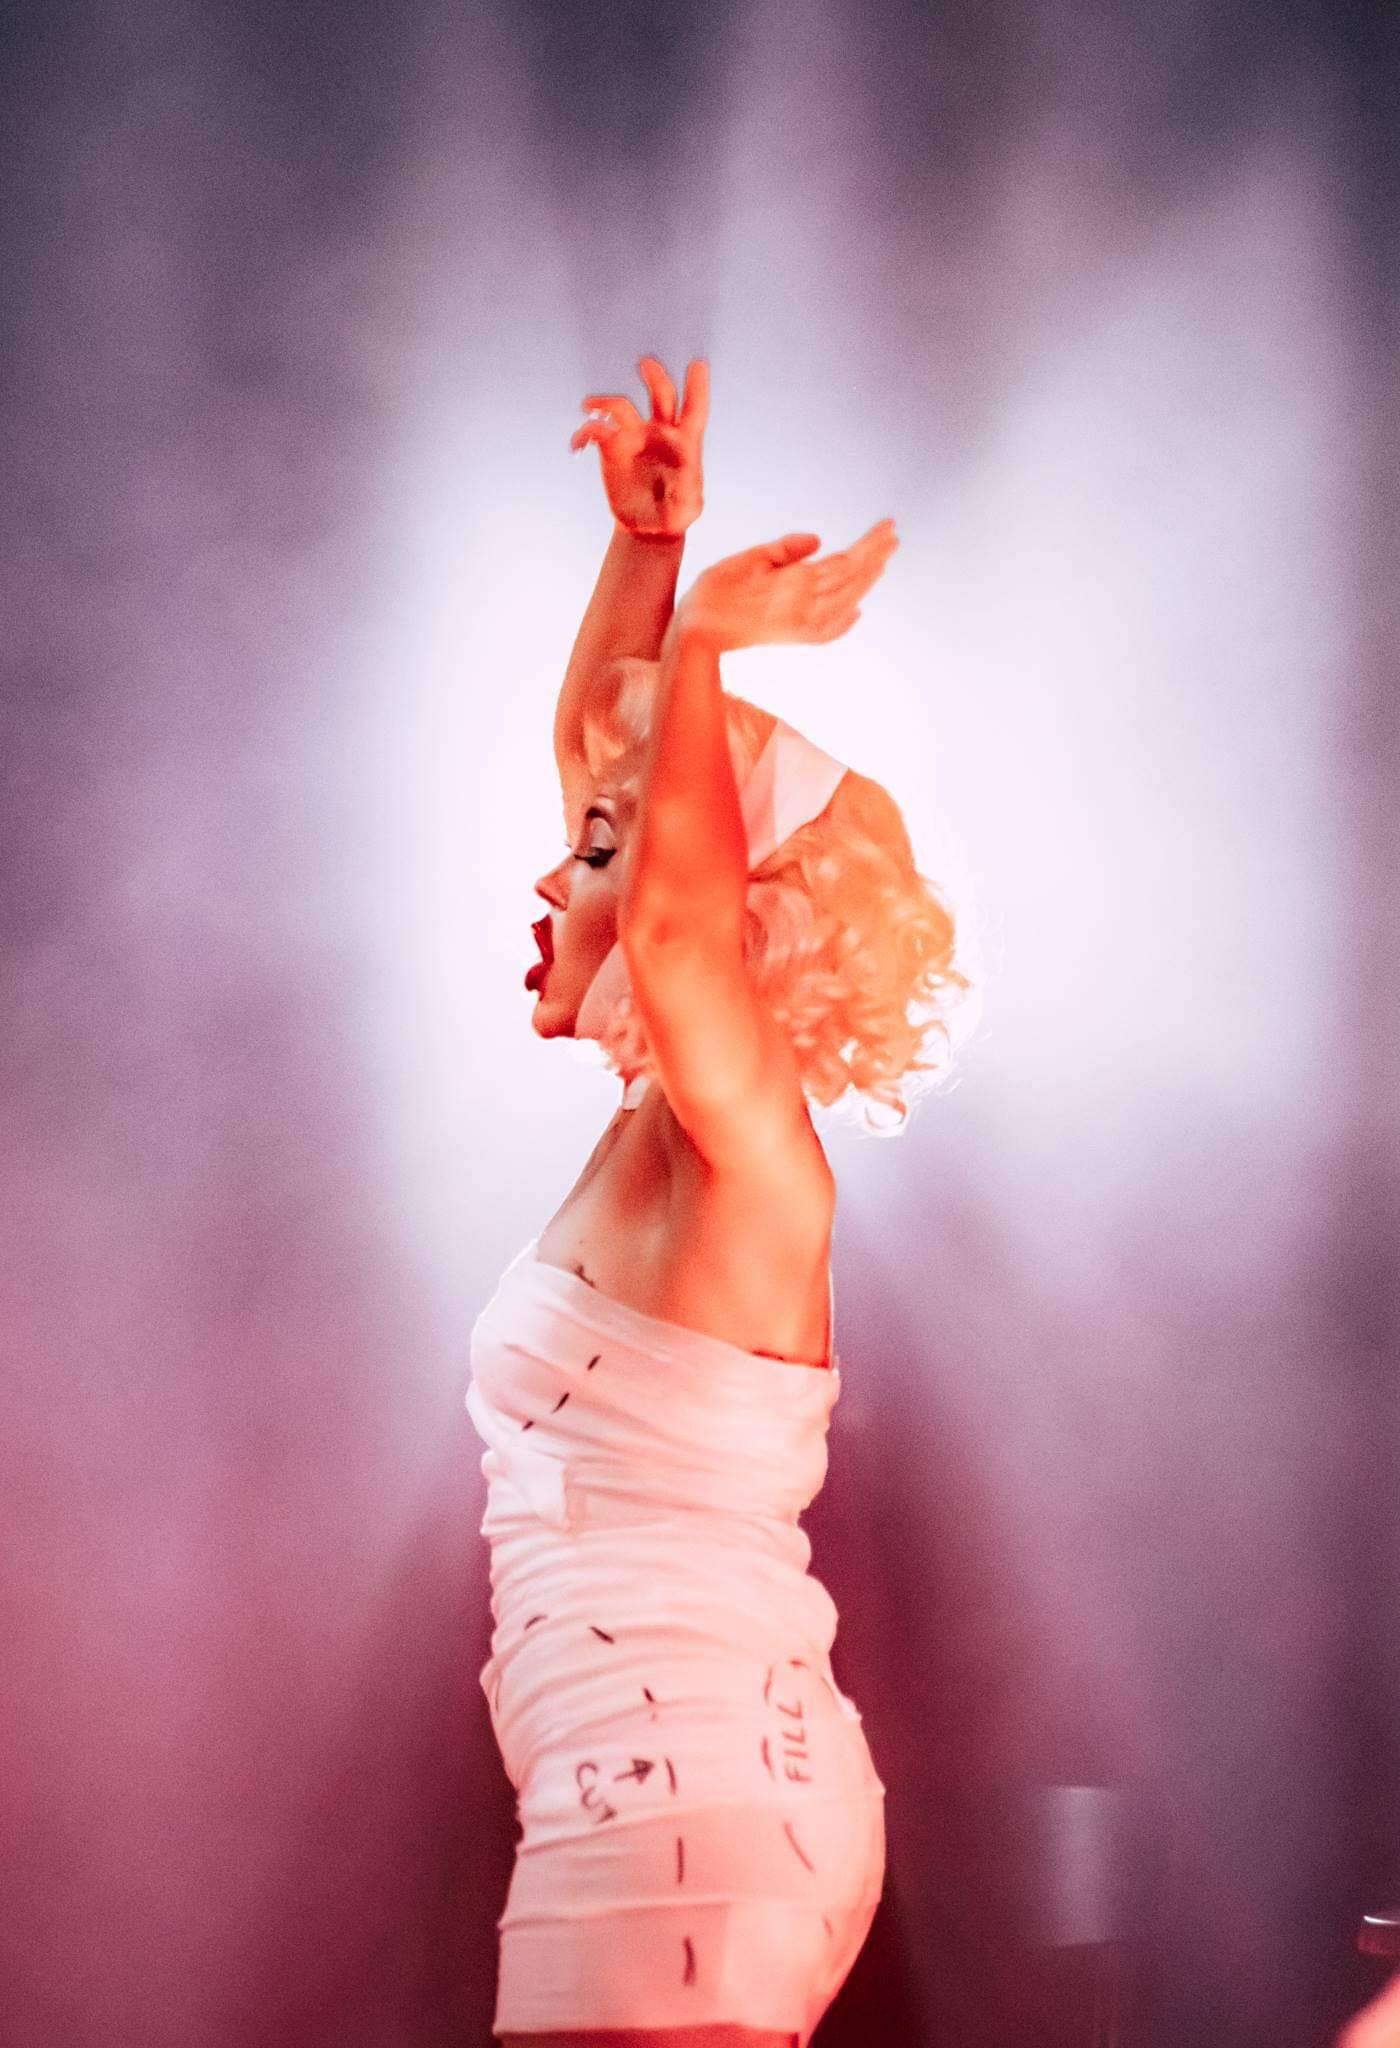 """In act 2 of """"Die Fledermaus"""" Ida is presented as a cross between Marilyn Monroe and Madonna doing a Blonde Ambition tour, but without any further layers of meaning. (Photo: Reinout Bos)"""